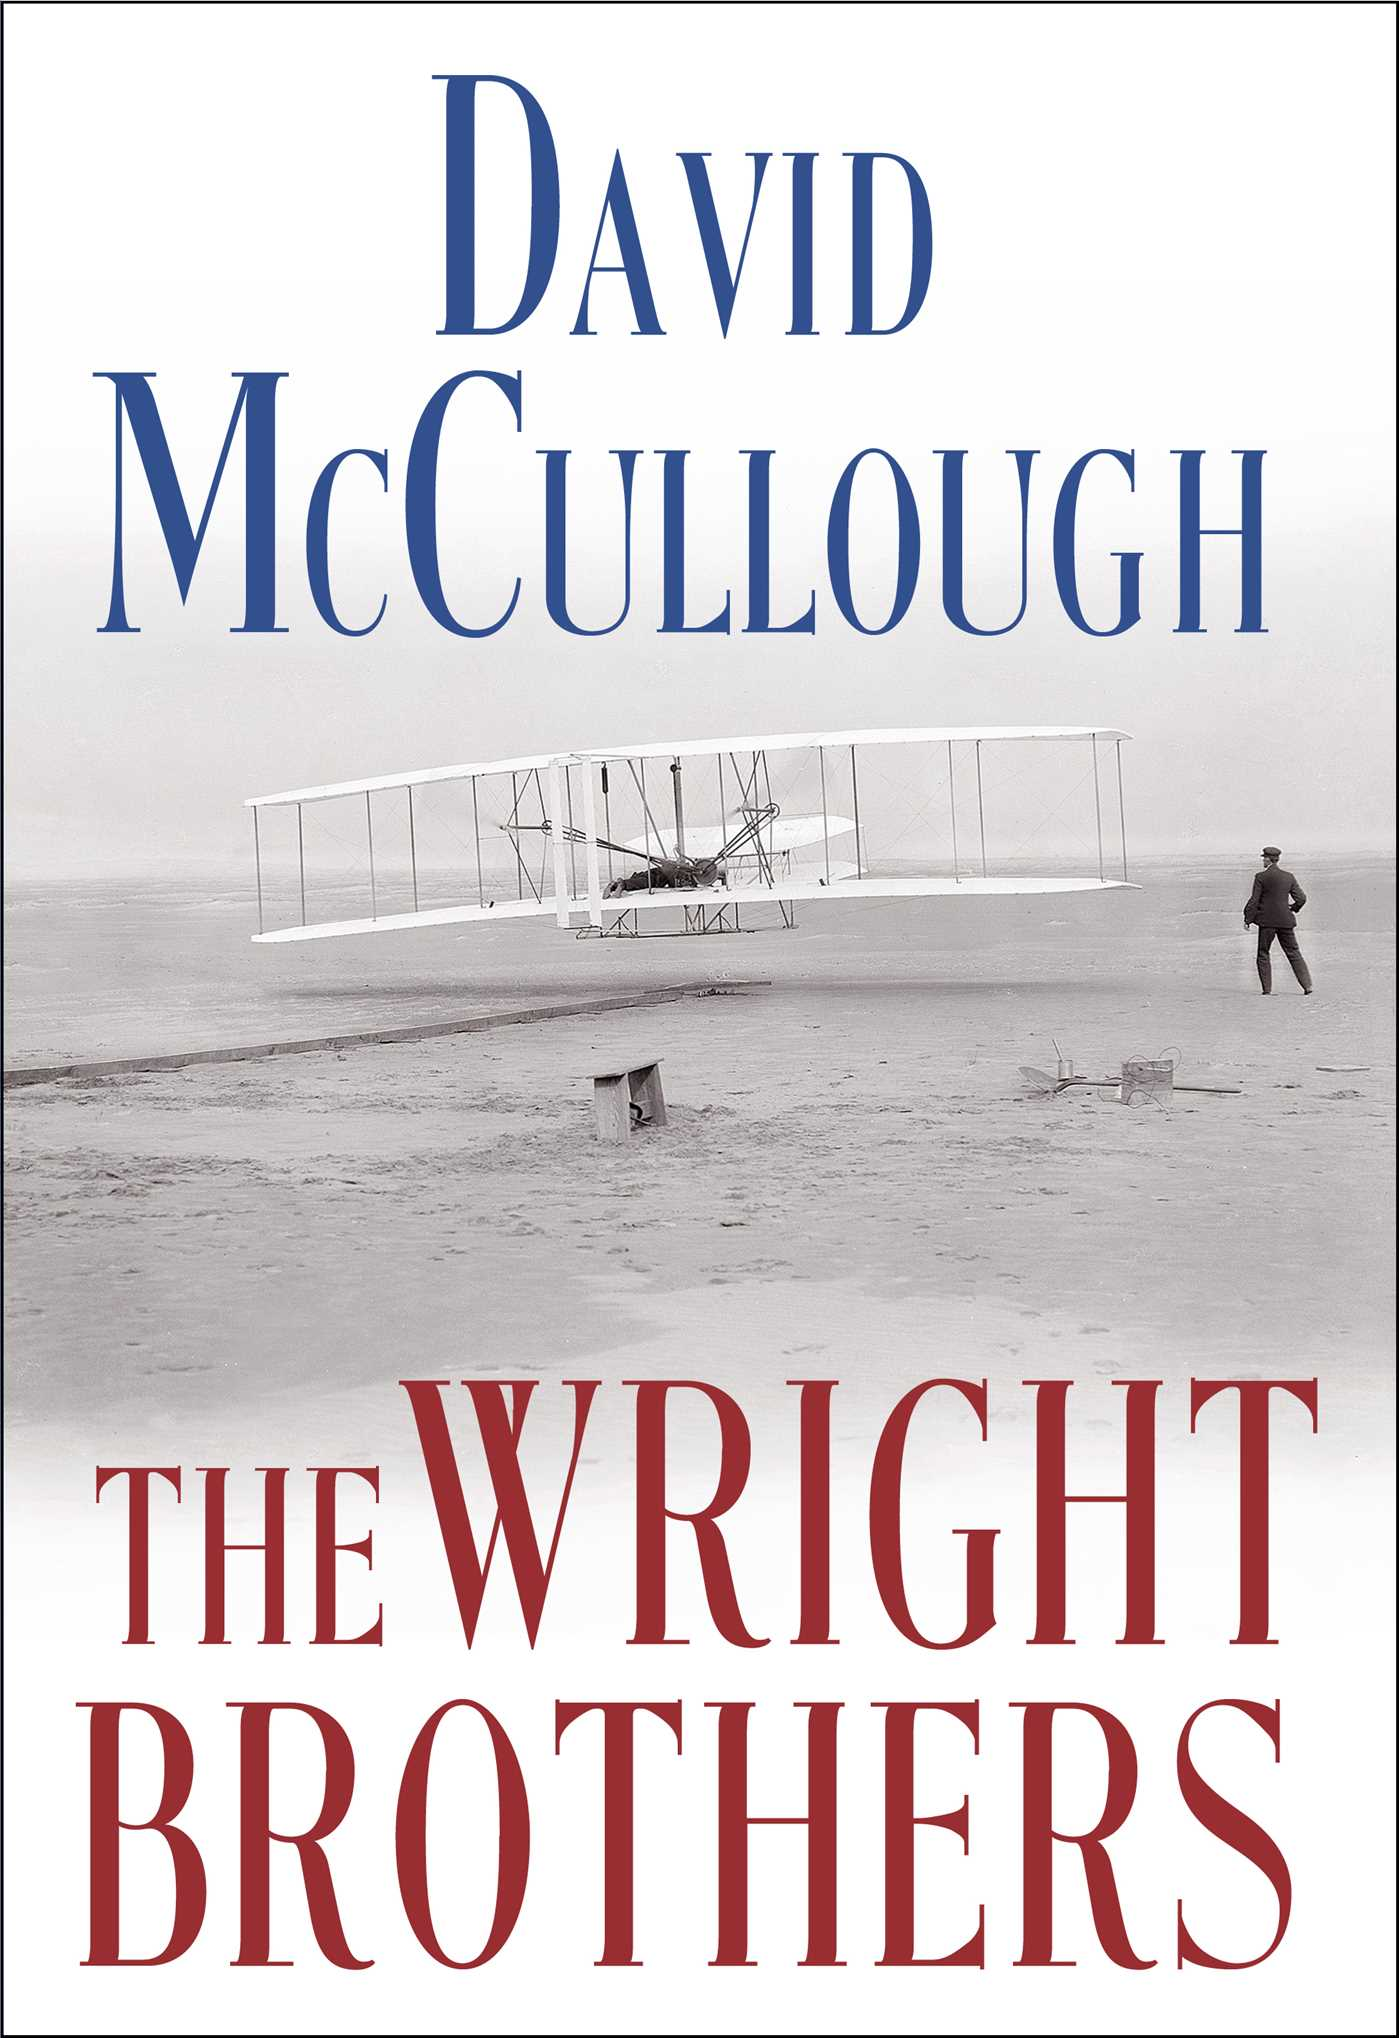 David mccullough the wright brothers dont need a diagram the wright brothers 9781476728742hr ccuart Images